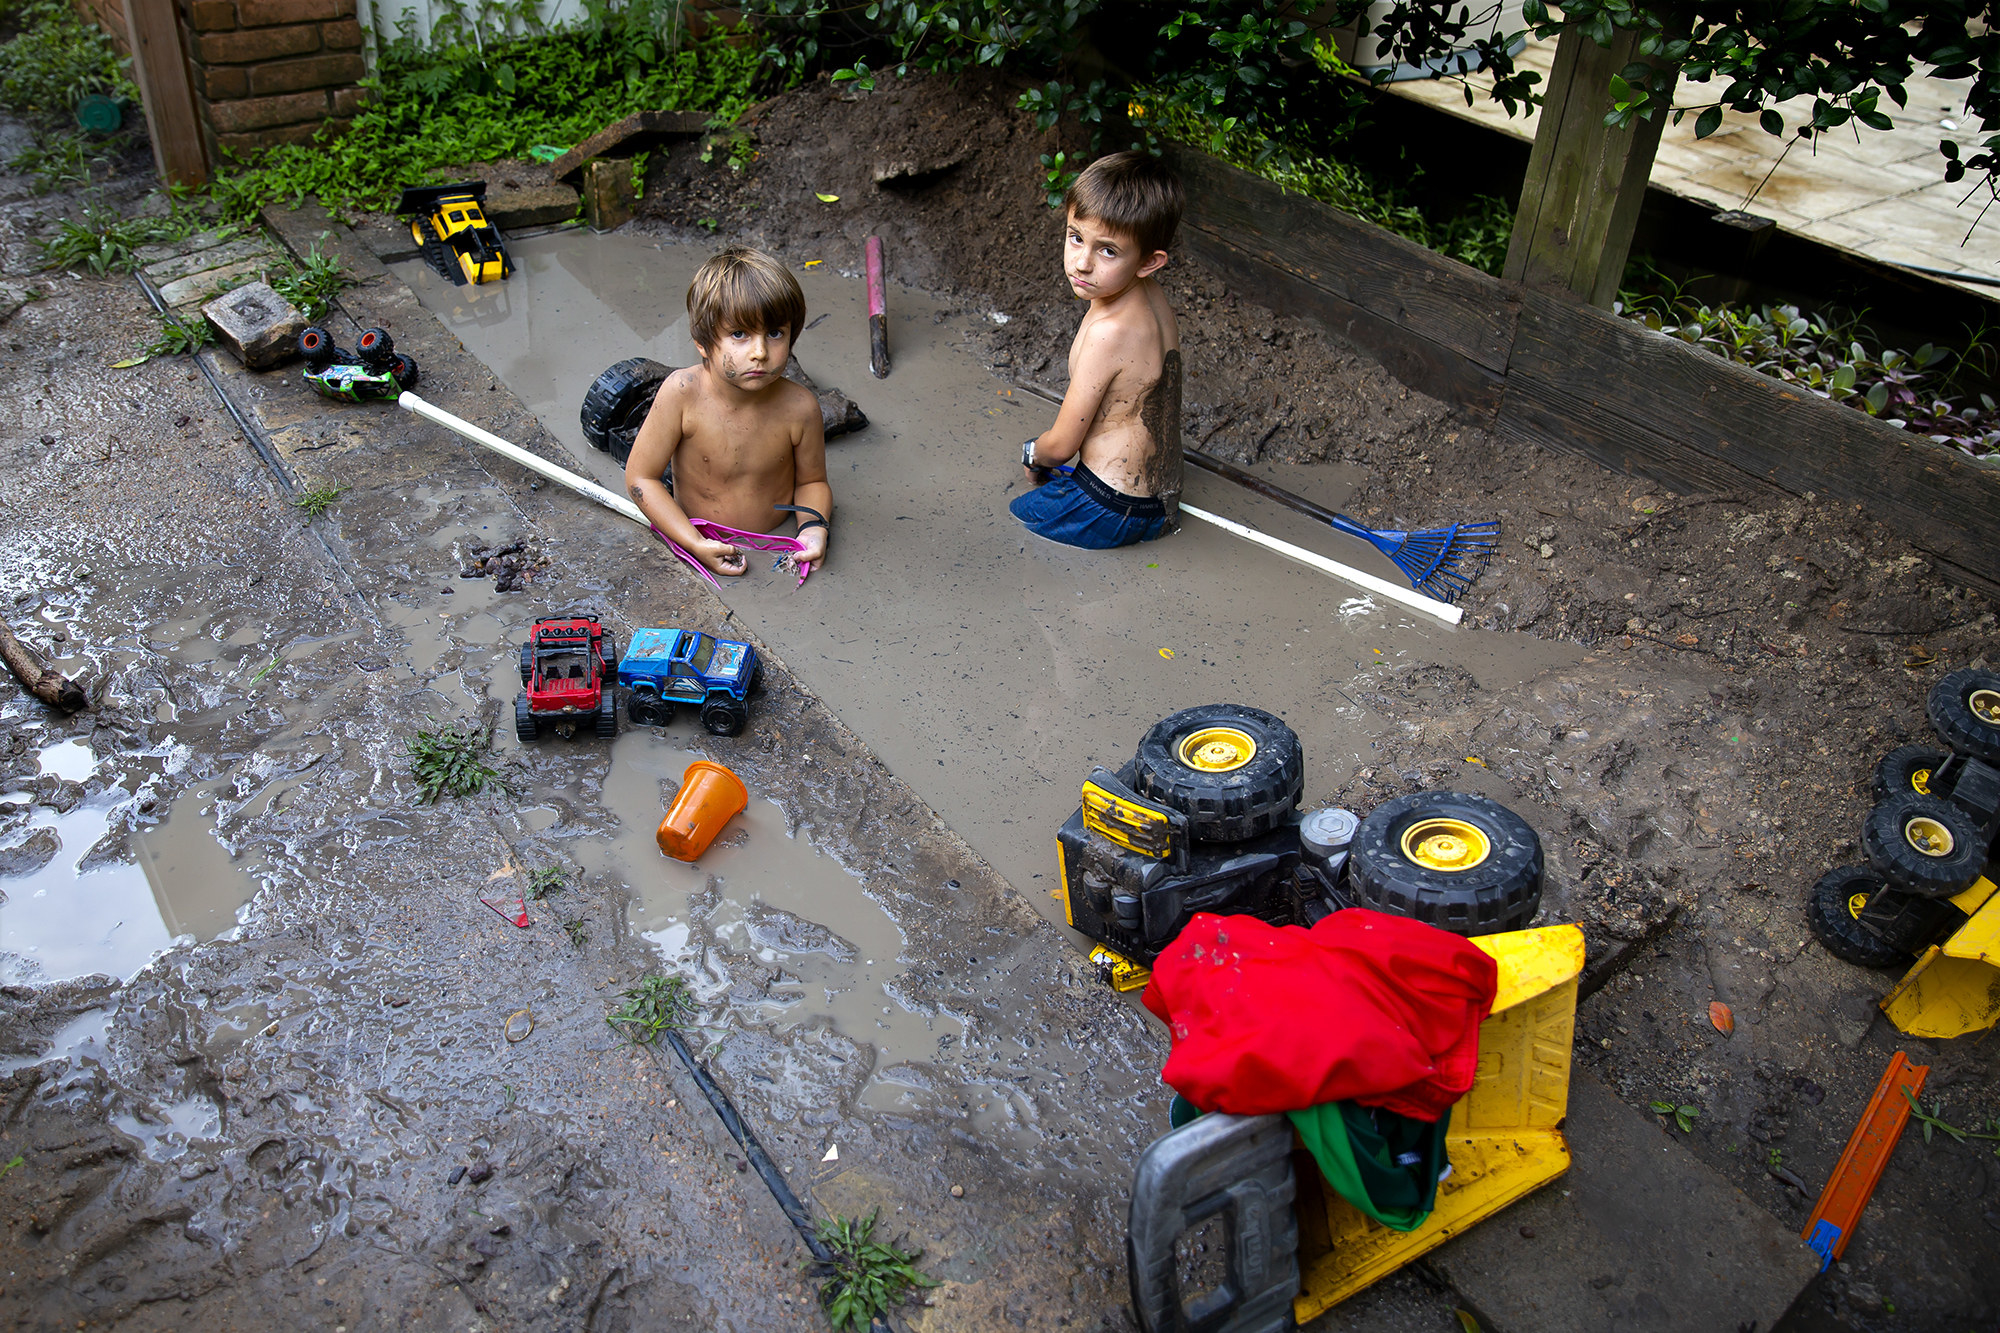 Two boys in a backyard mud pit